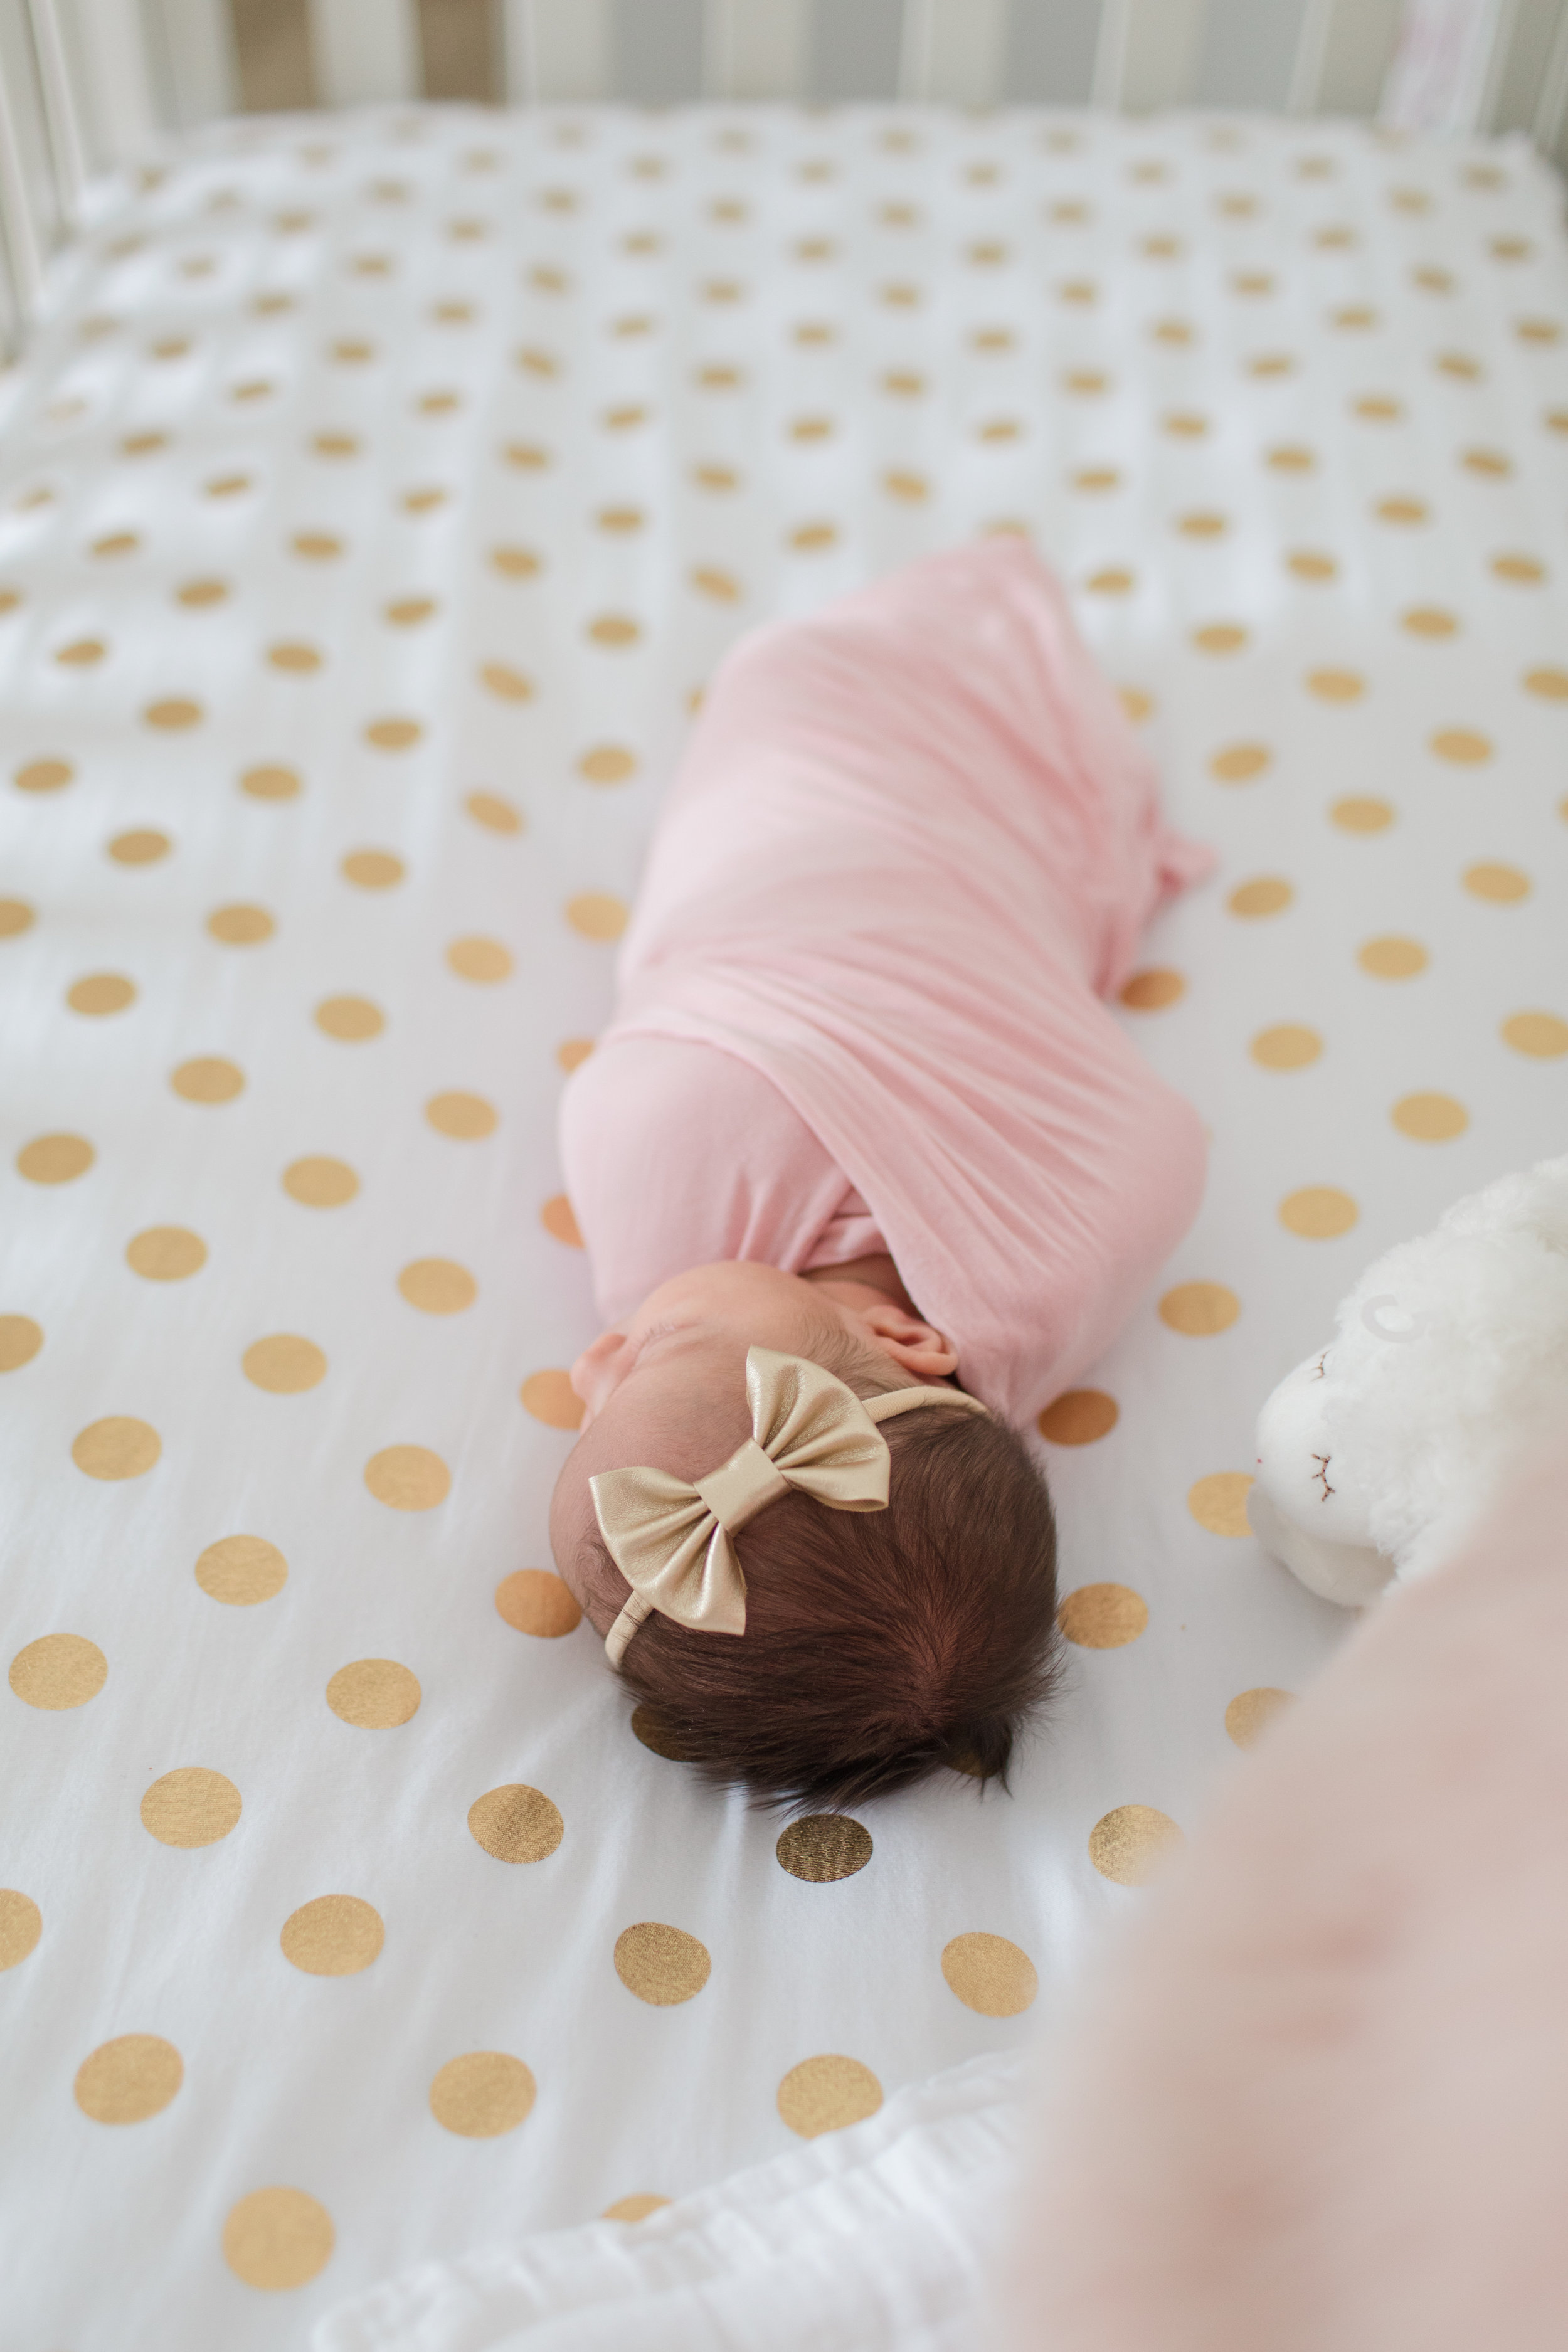 Lifestyle Newborn Baby Girl in her Gold and White Crib